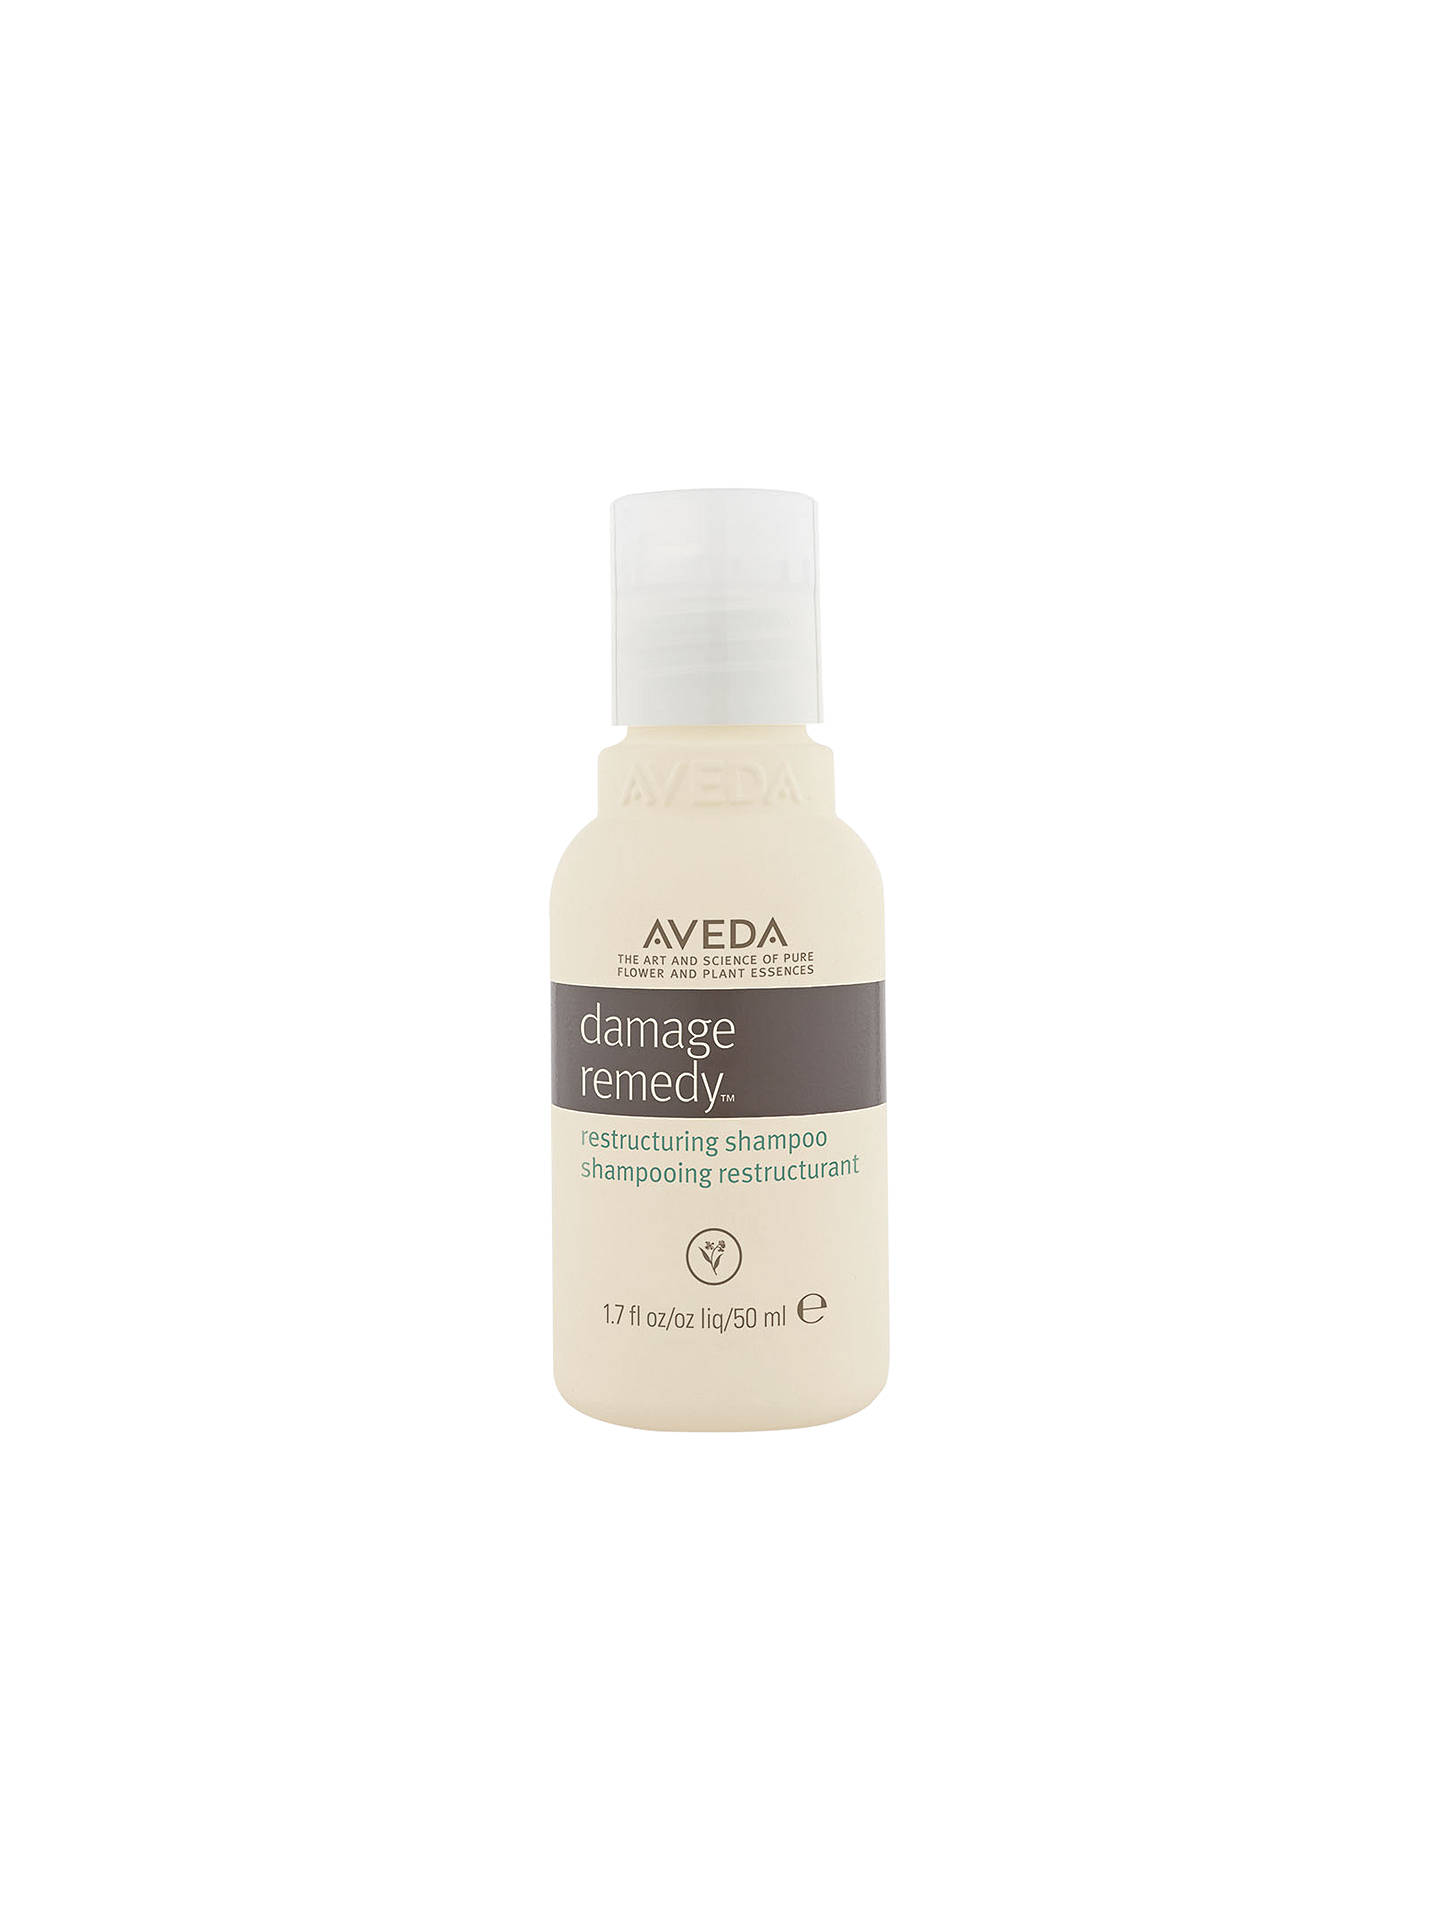 BuyAVEDA Damage Remedy™ Restructuring Shampoo, 50ml Online at johnlewis.com